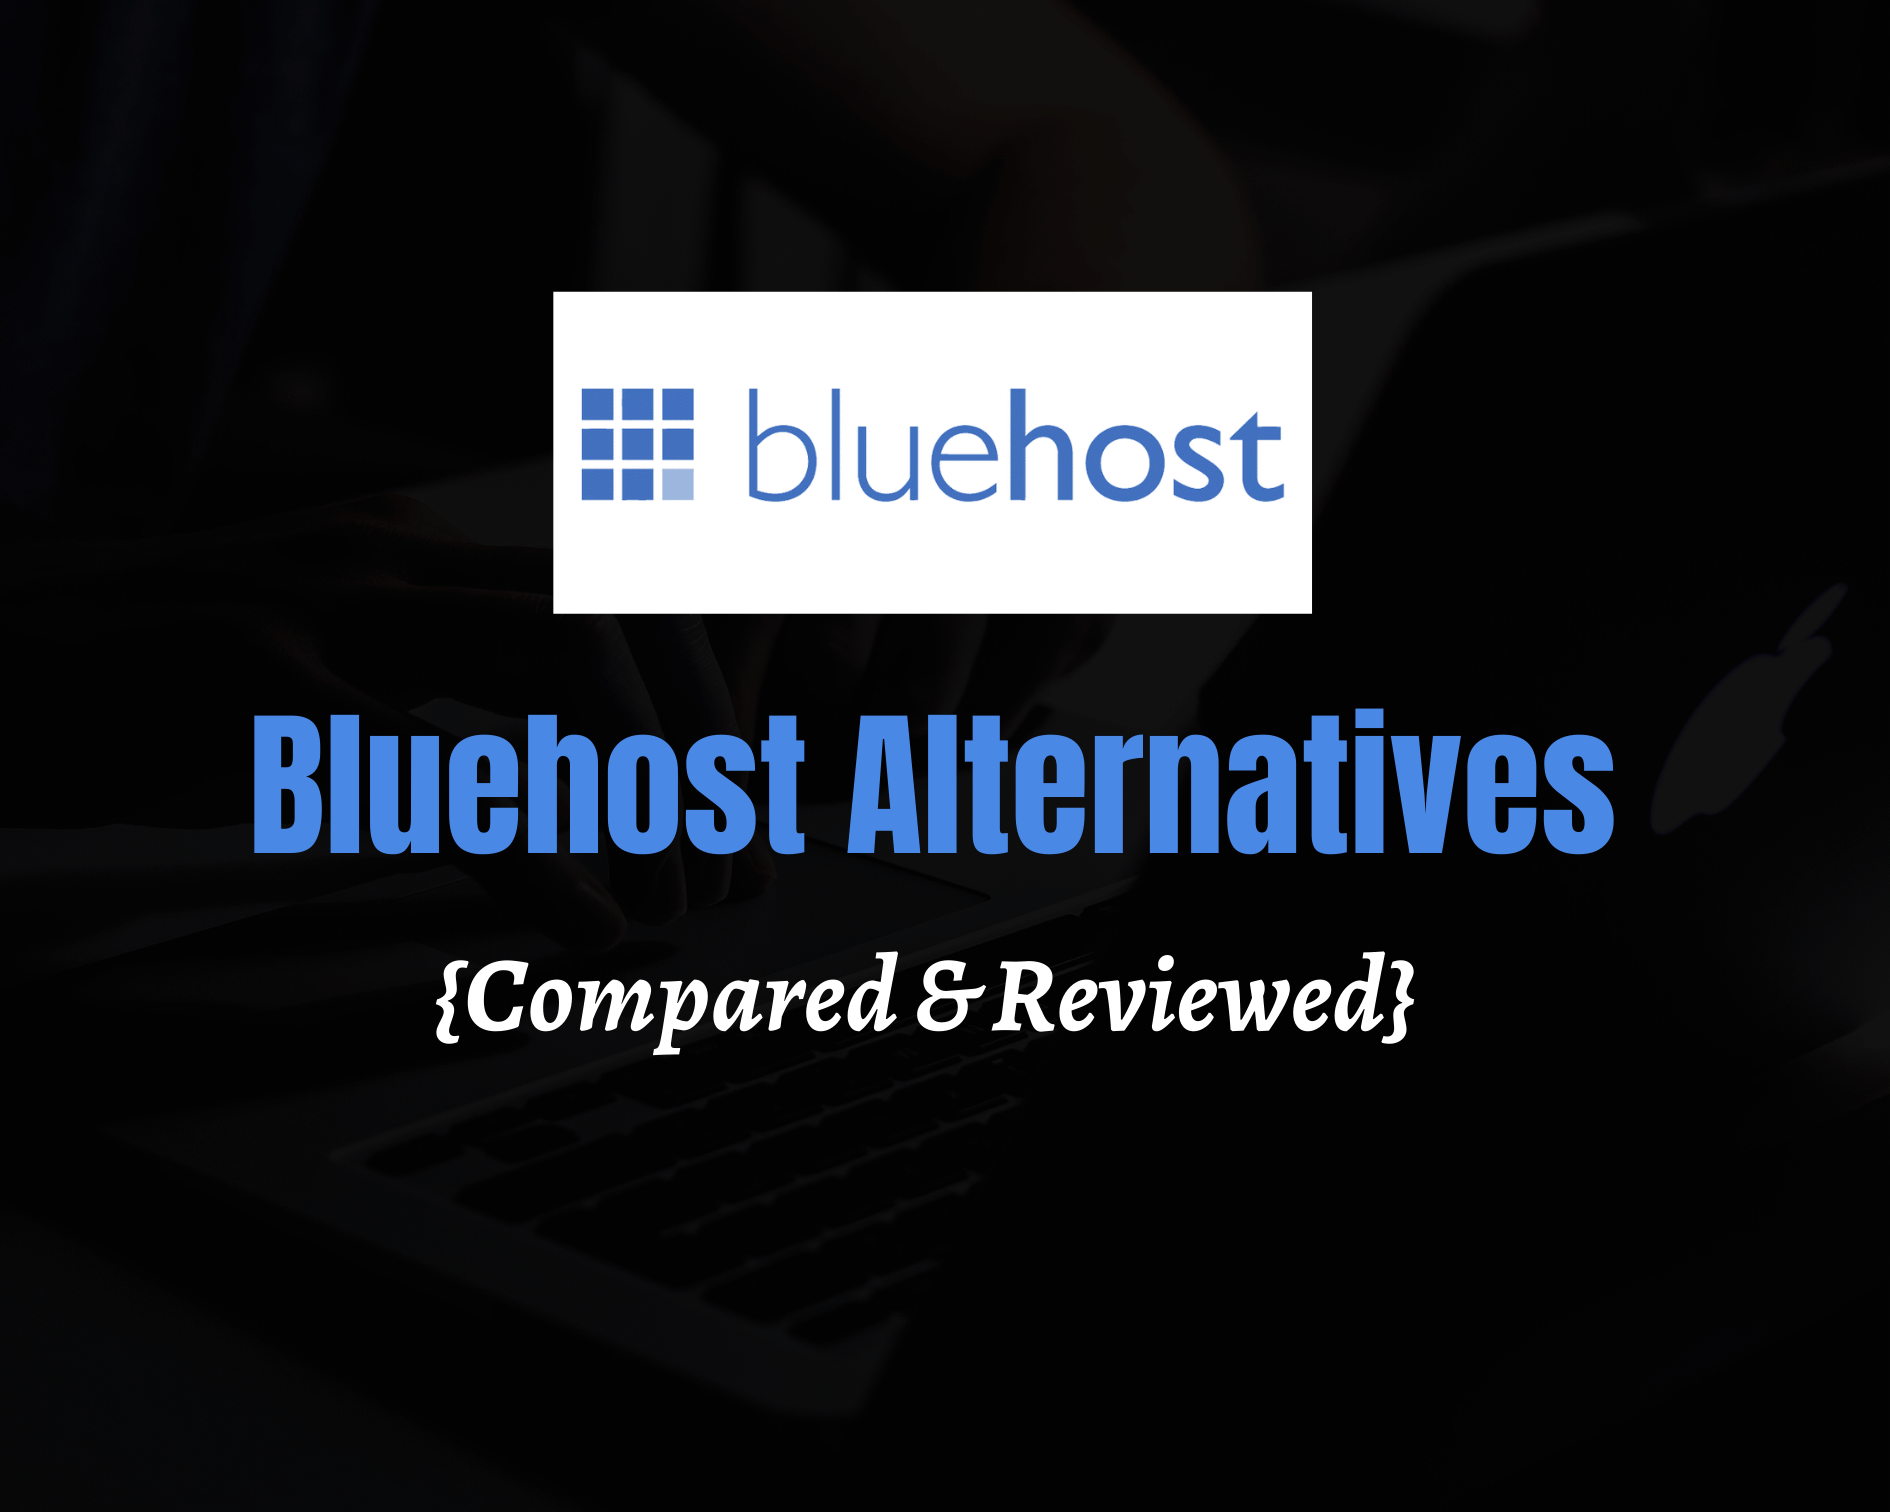 7 Best Bluehost Alternatives for 2021 [ Number #1 Is Best]